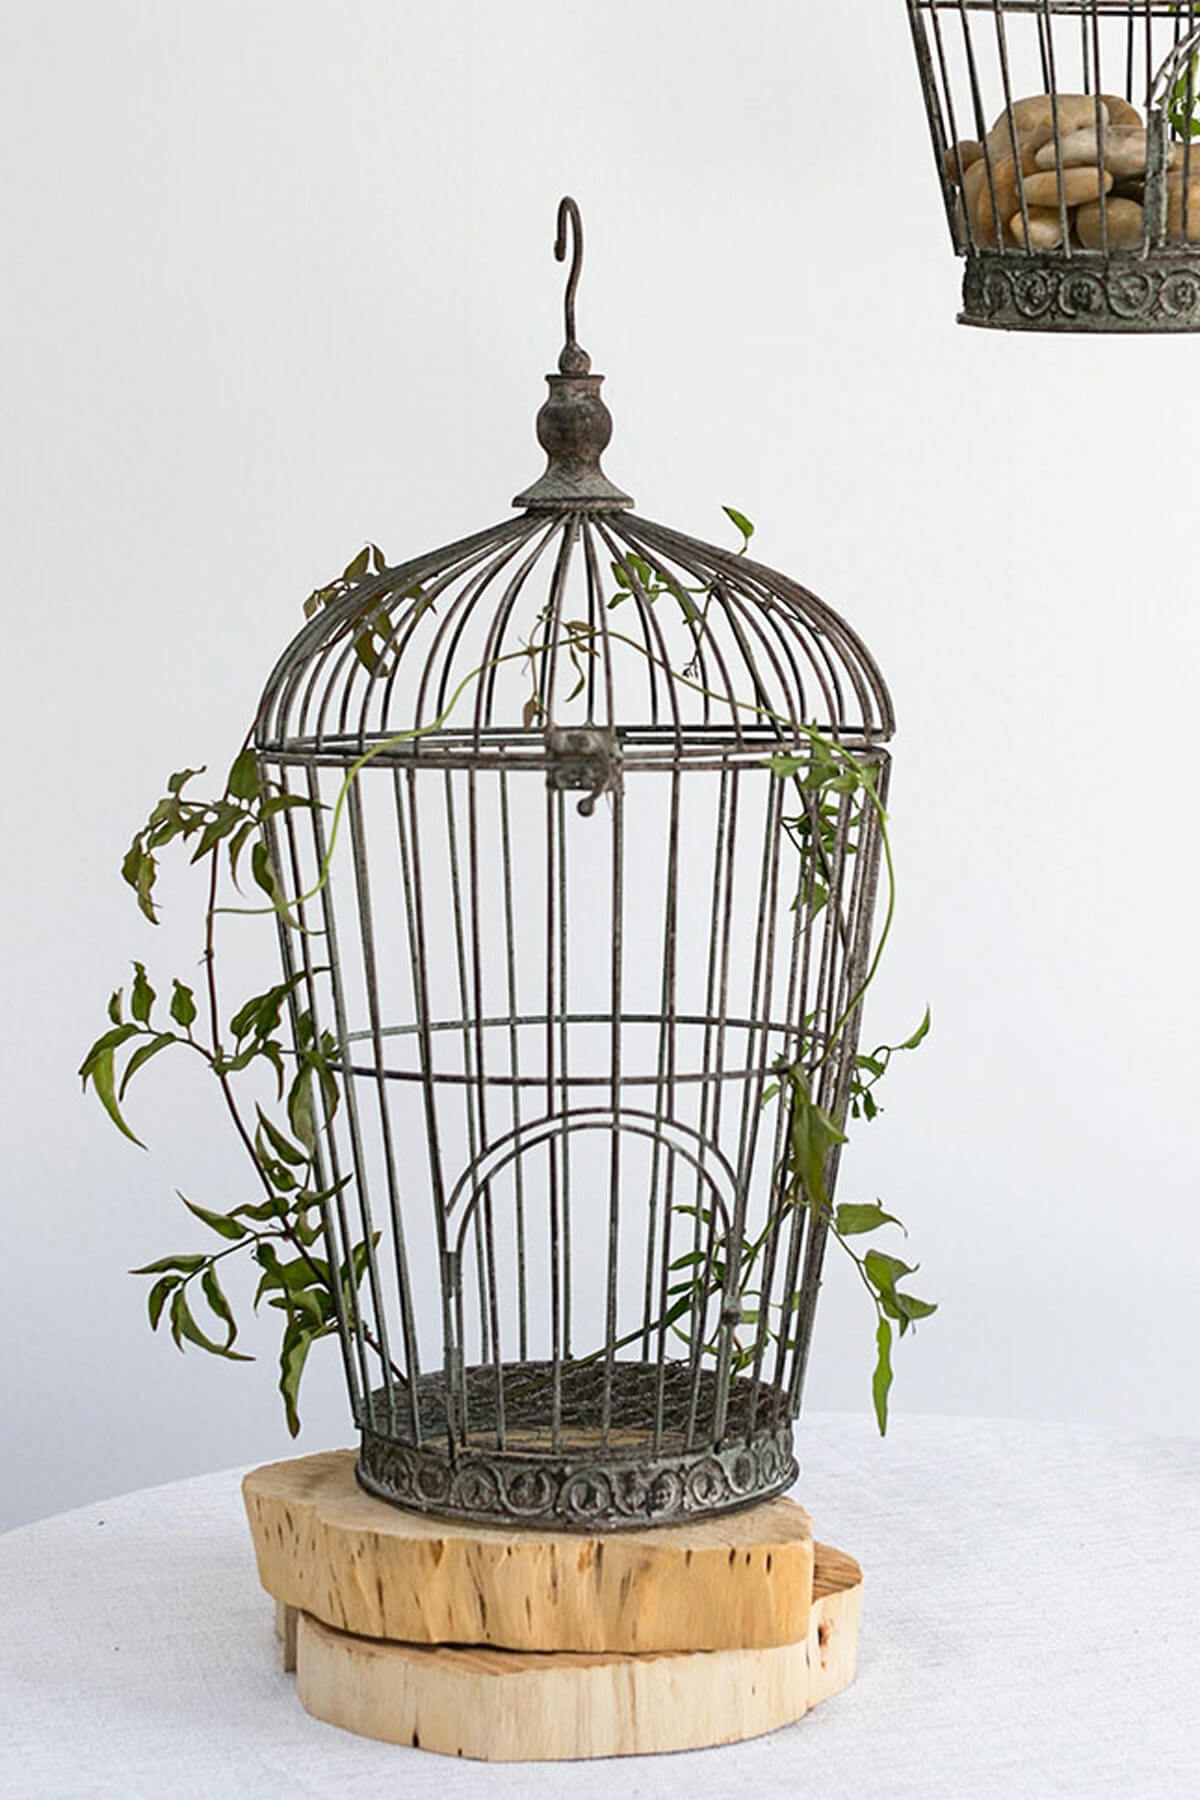 Decorative Birdcages Bird nests & more Save Crafts